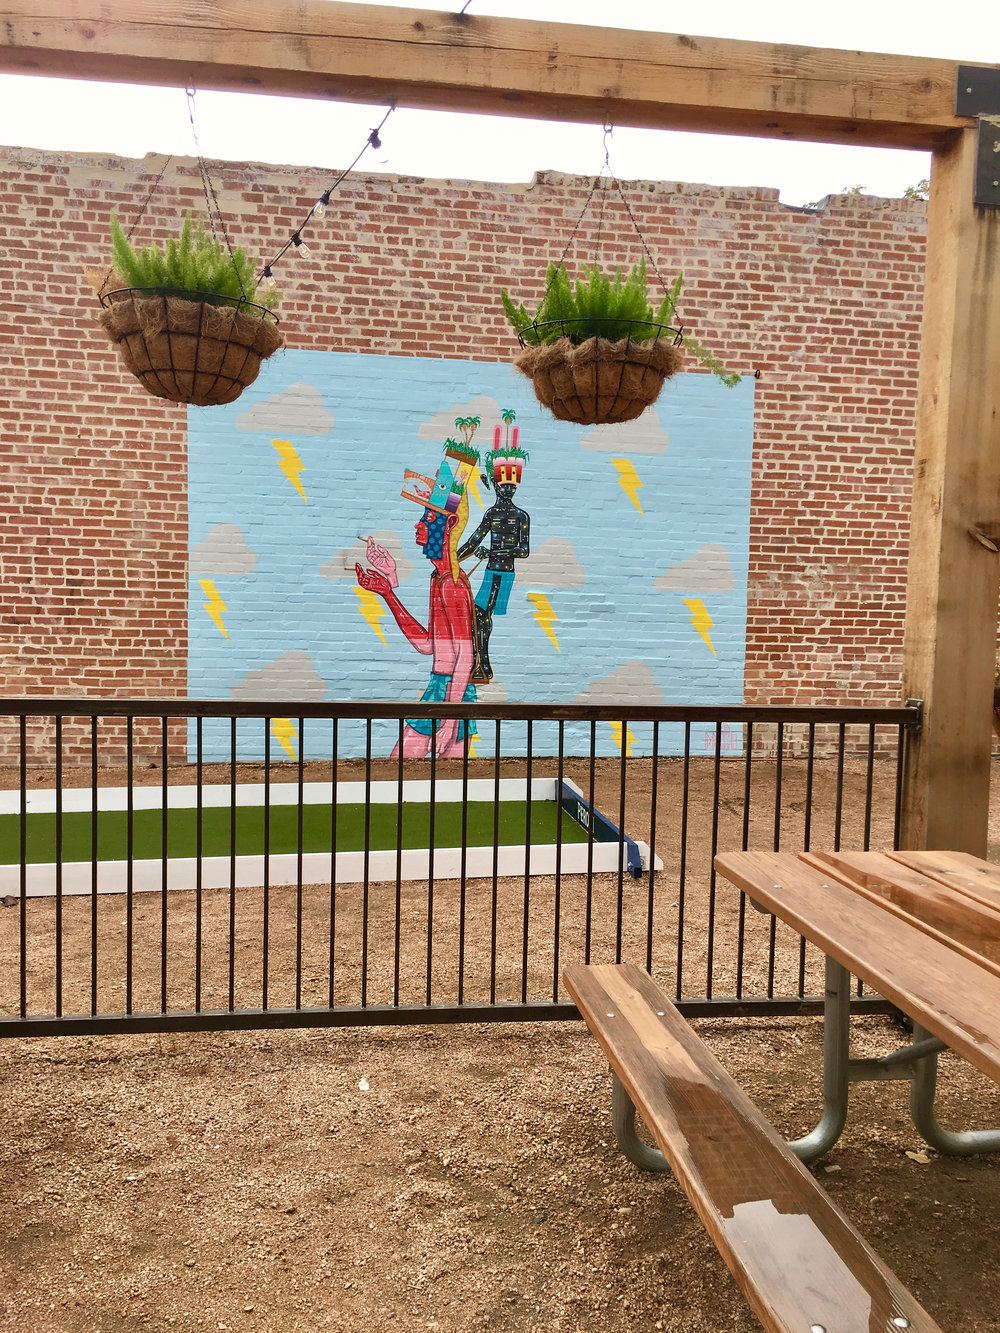 Drigo mural, painting in Deep Ellum, Dallas, Texas on the patio of Easy Slider